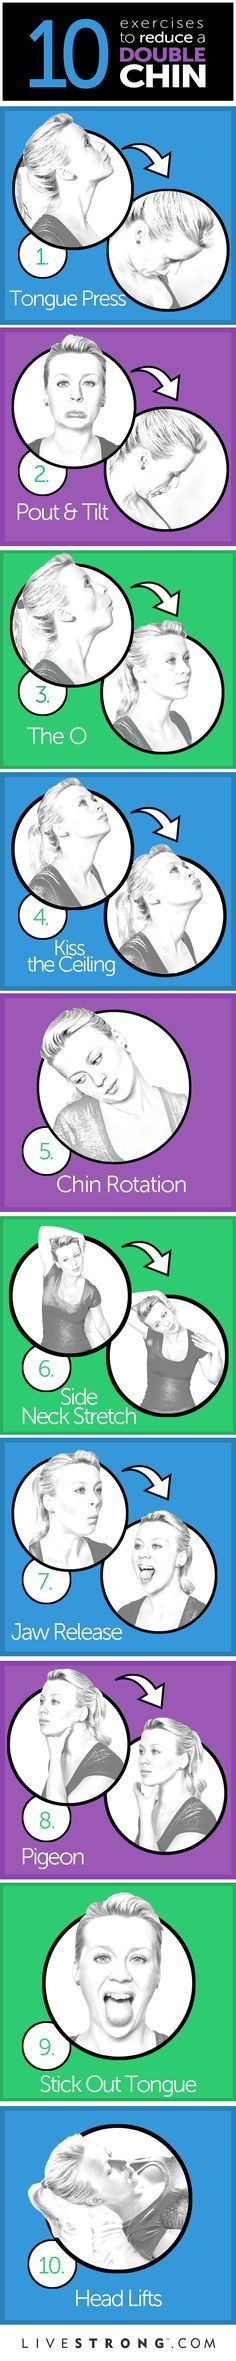 10 Ejercicios para reducir el doble mentón - 10 great exercises to tone your neck and chin.